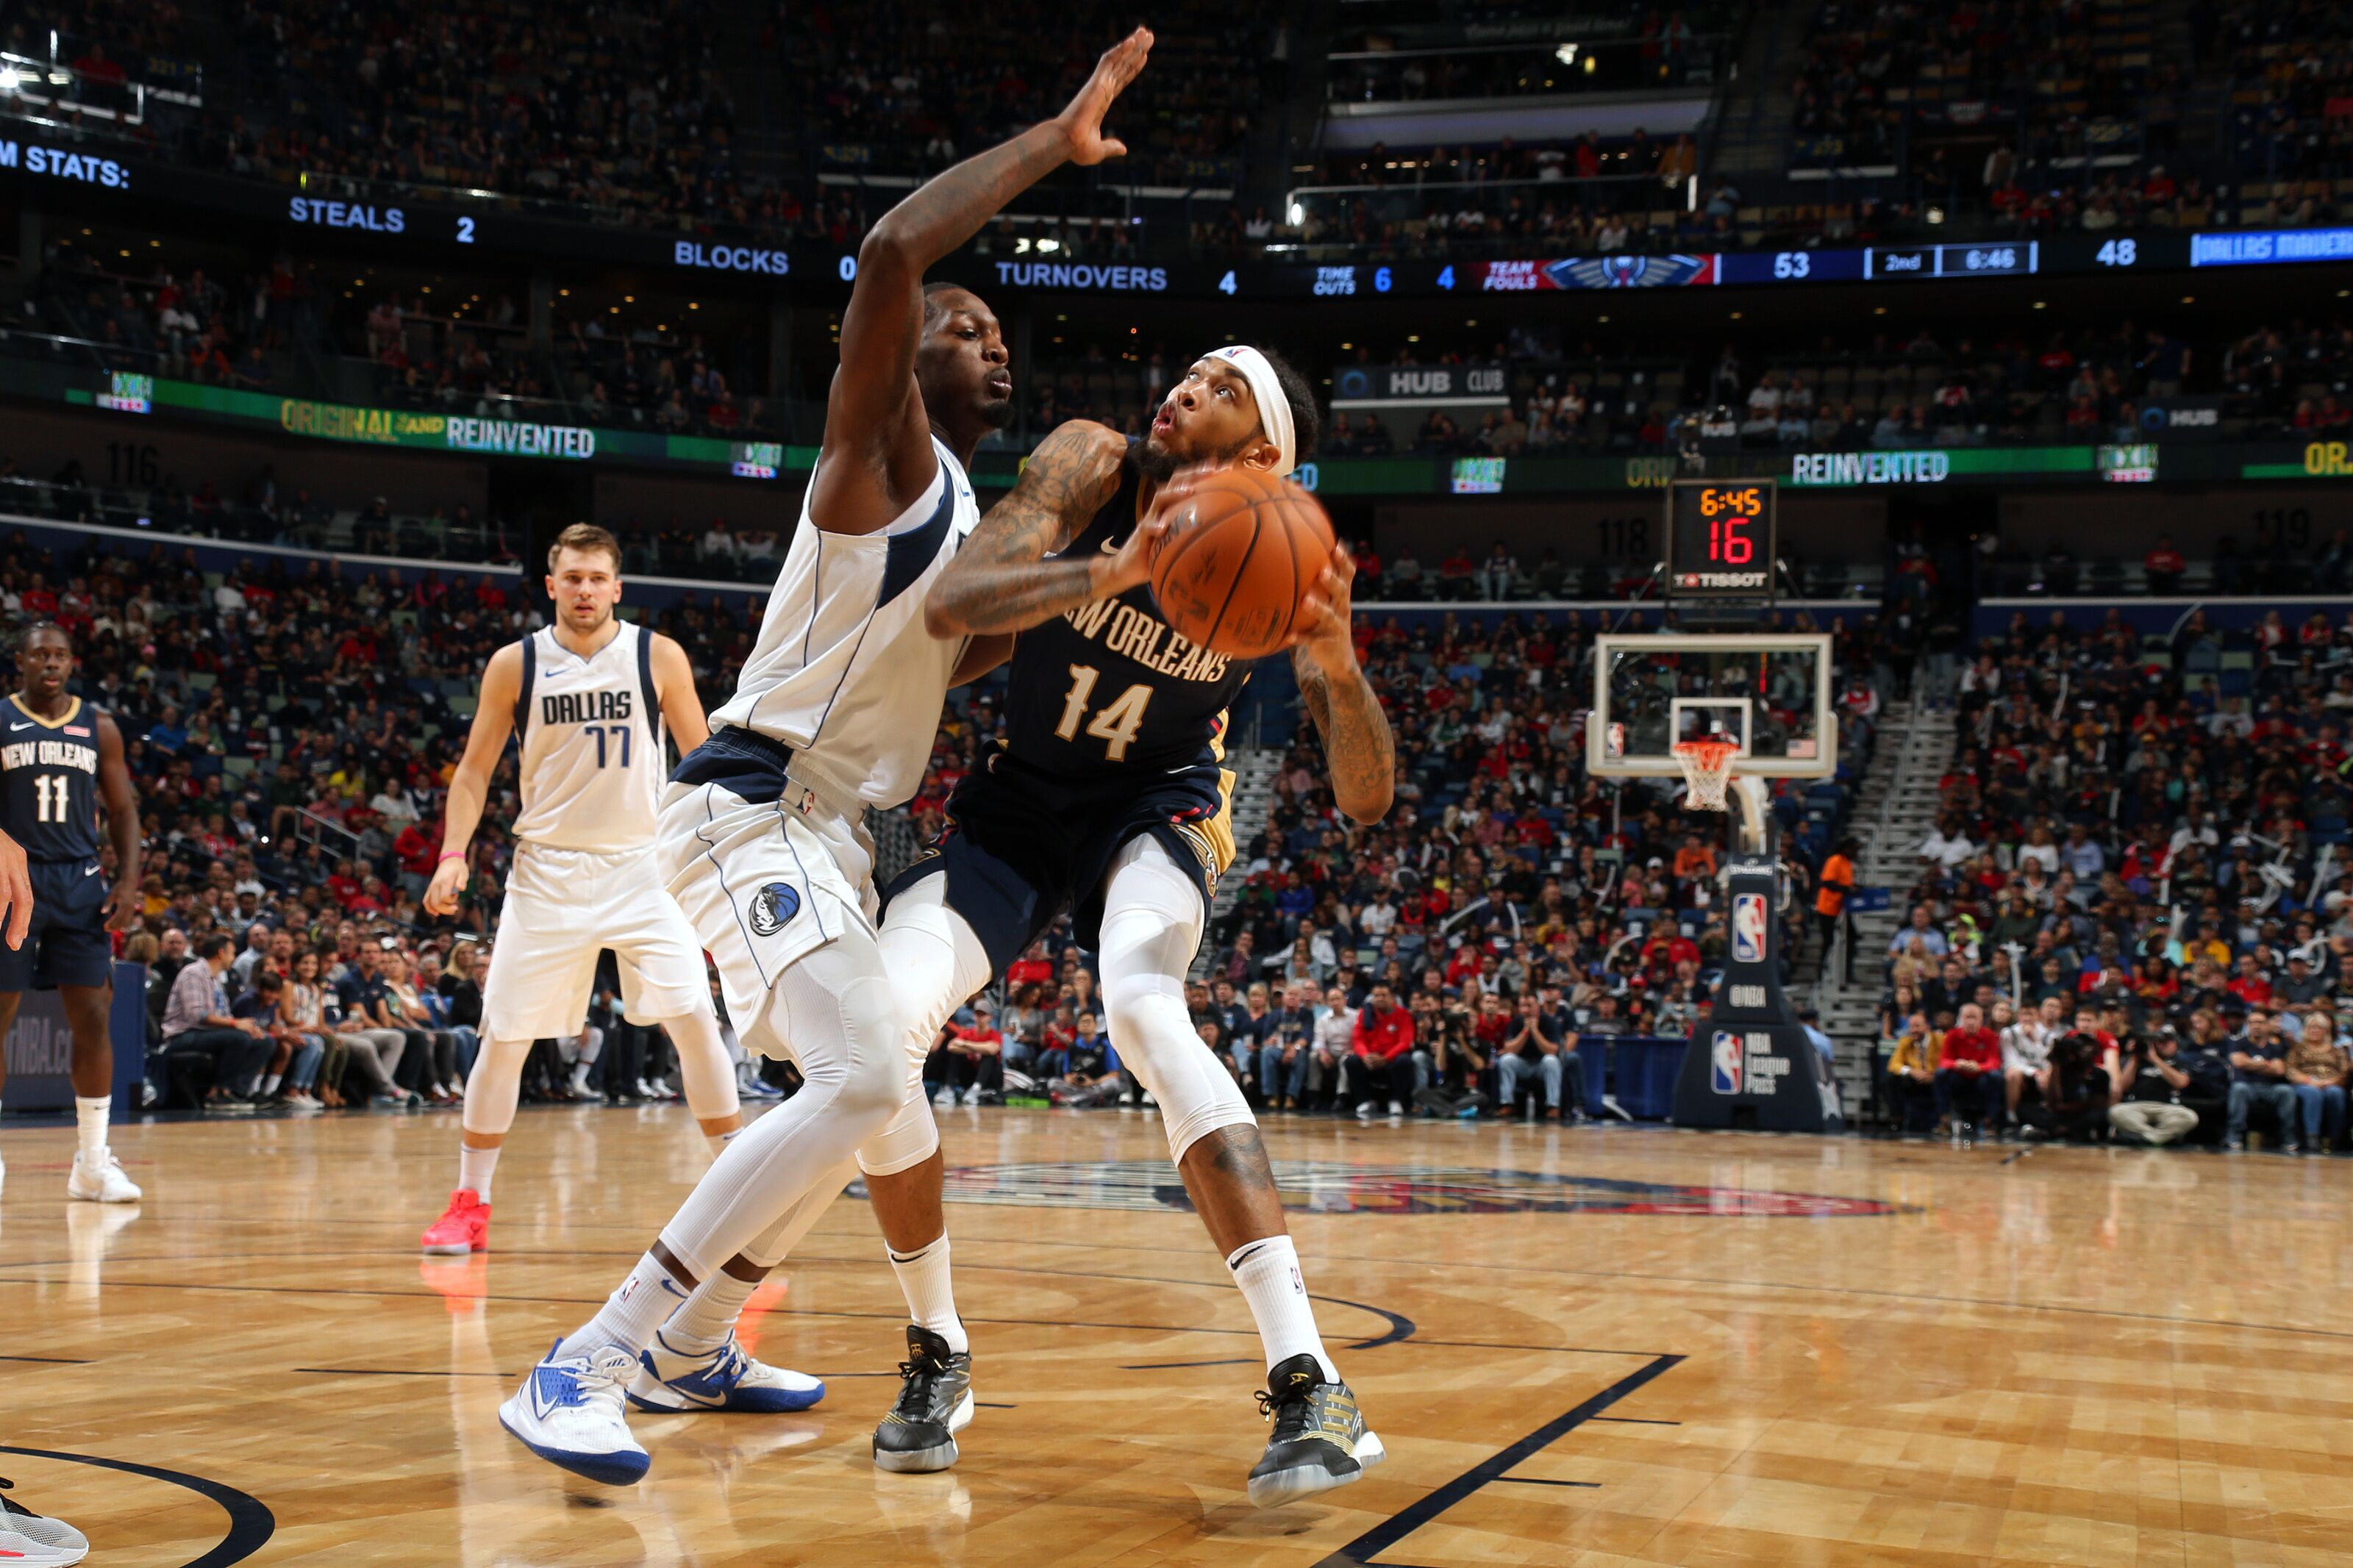 New Orleans Pelicans prepped to host Paul George, Clippers